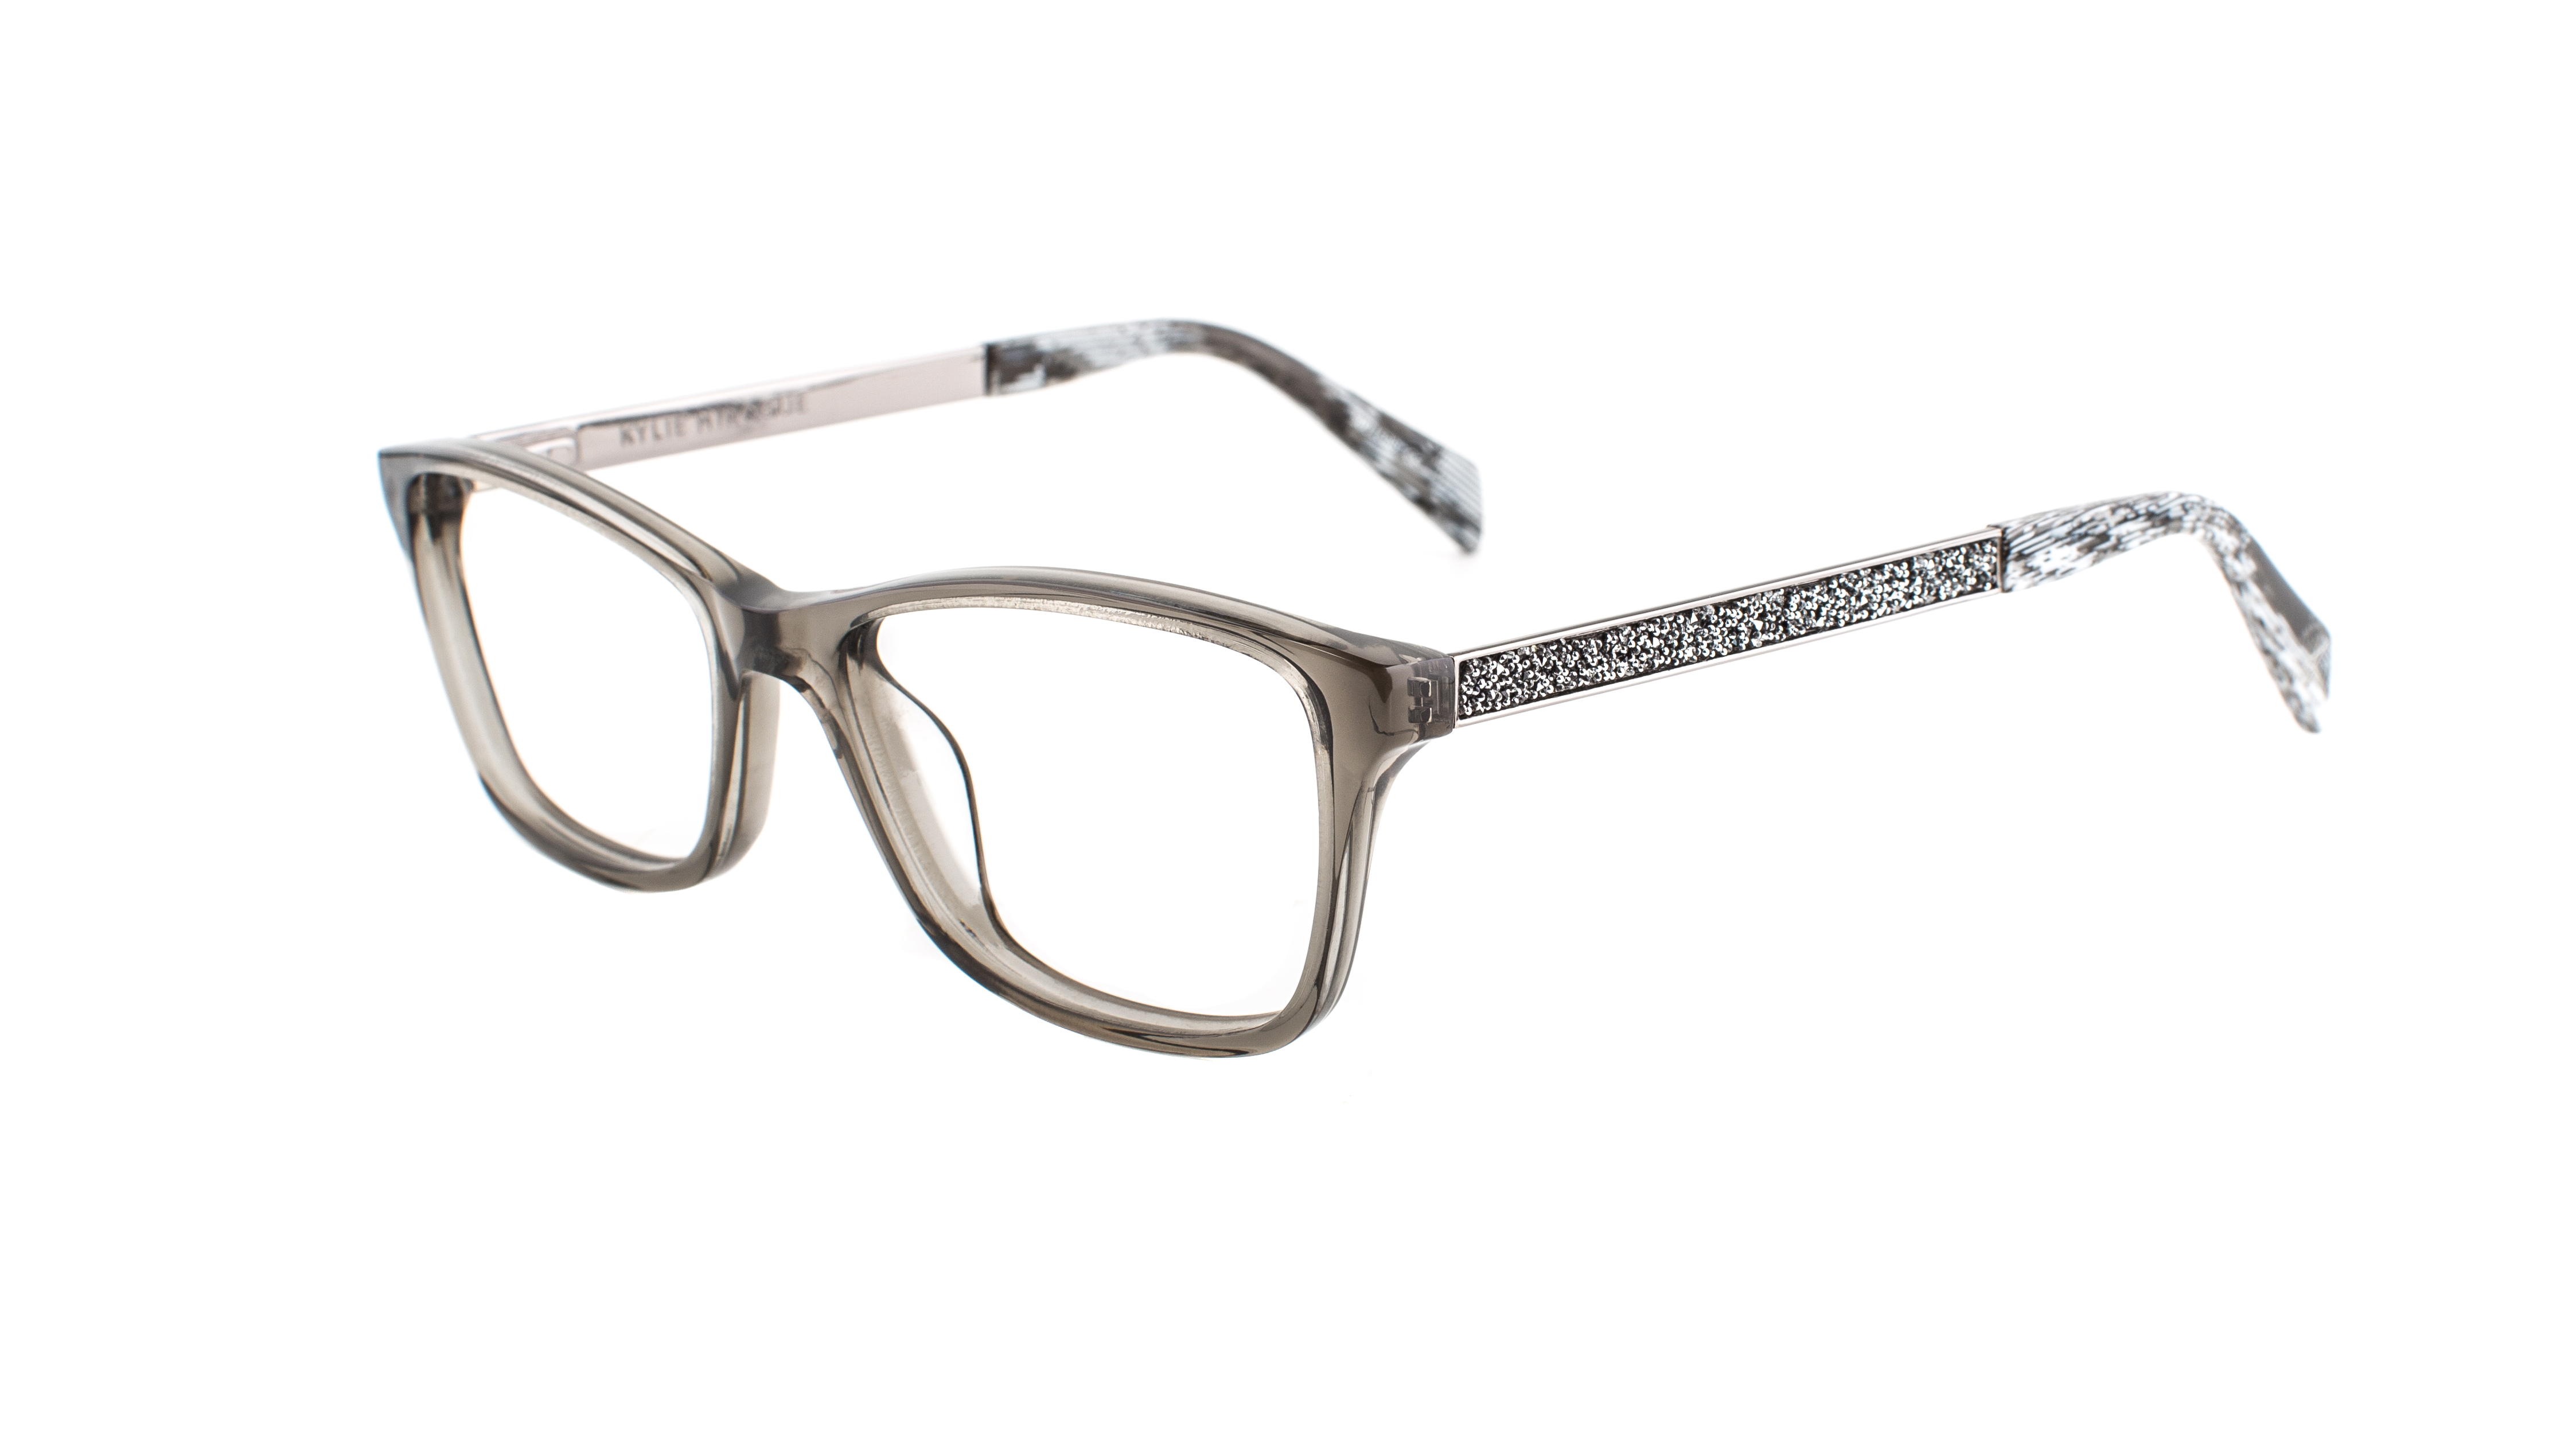 Kylie Minogue Eyewear_Kylie 08_SKU 30520219_RRP 2 pairs from $299 (2)